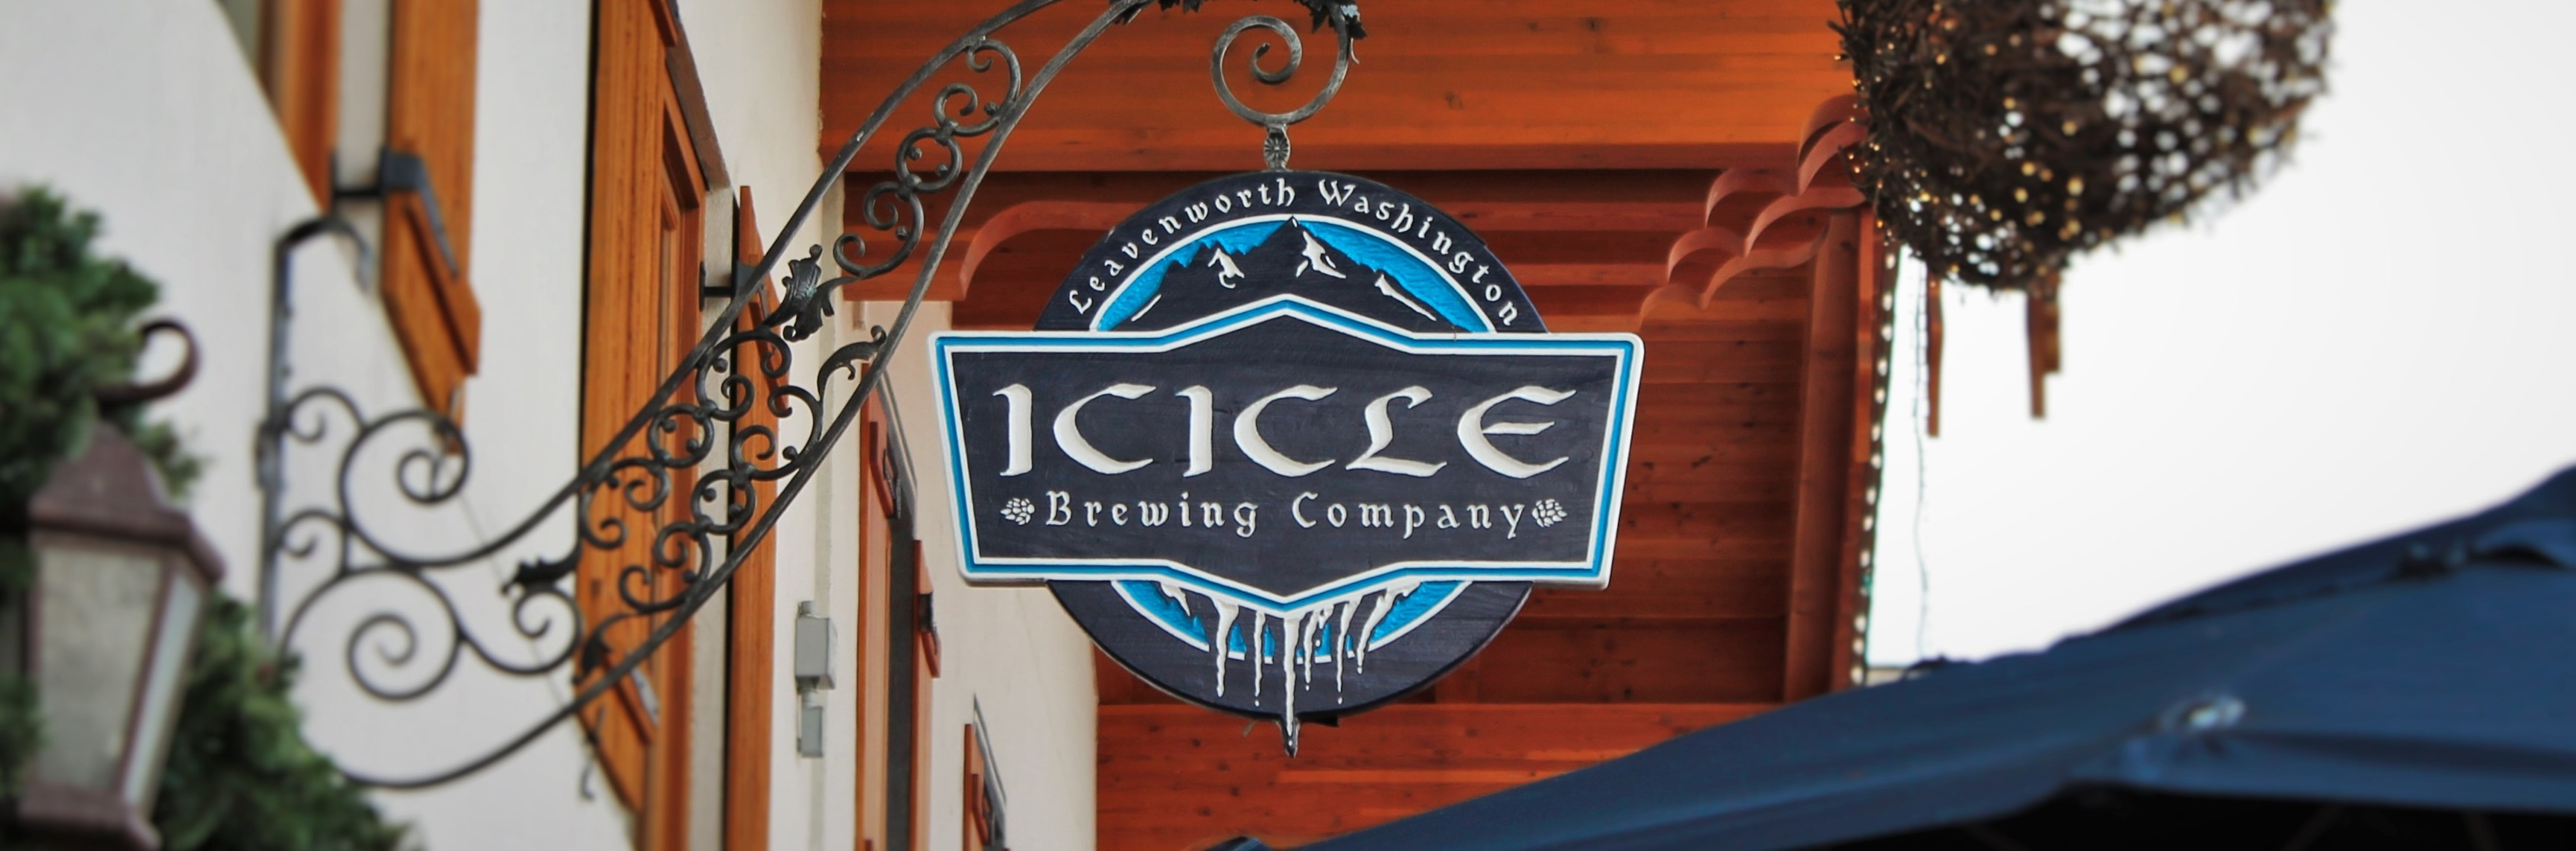 Icicle Brewing Company sign Leavenworth WA 2